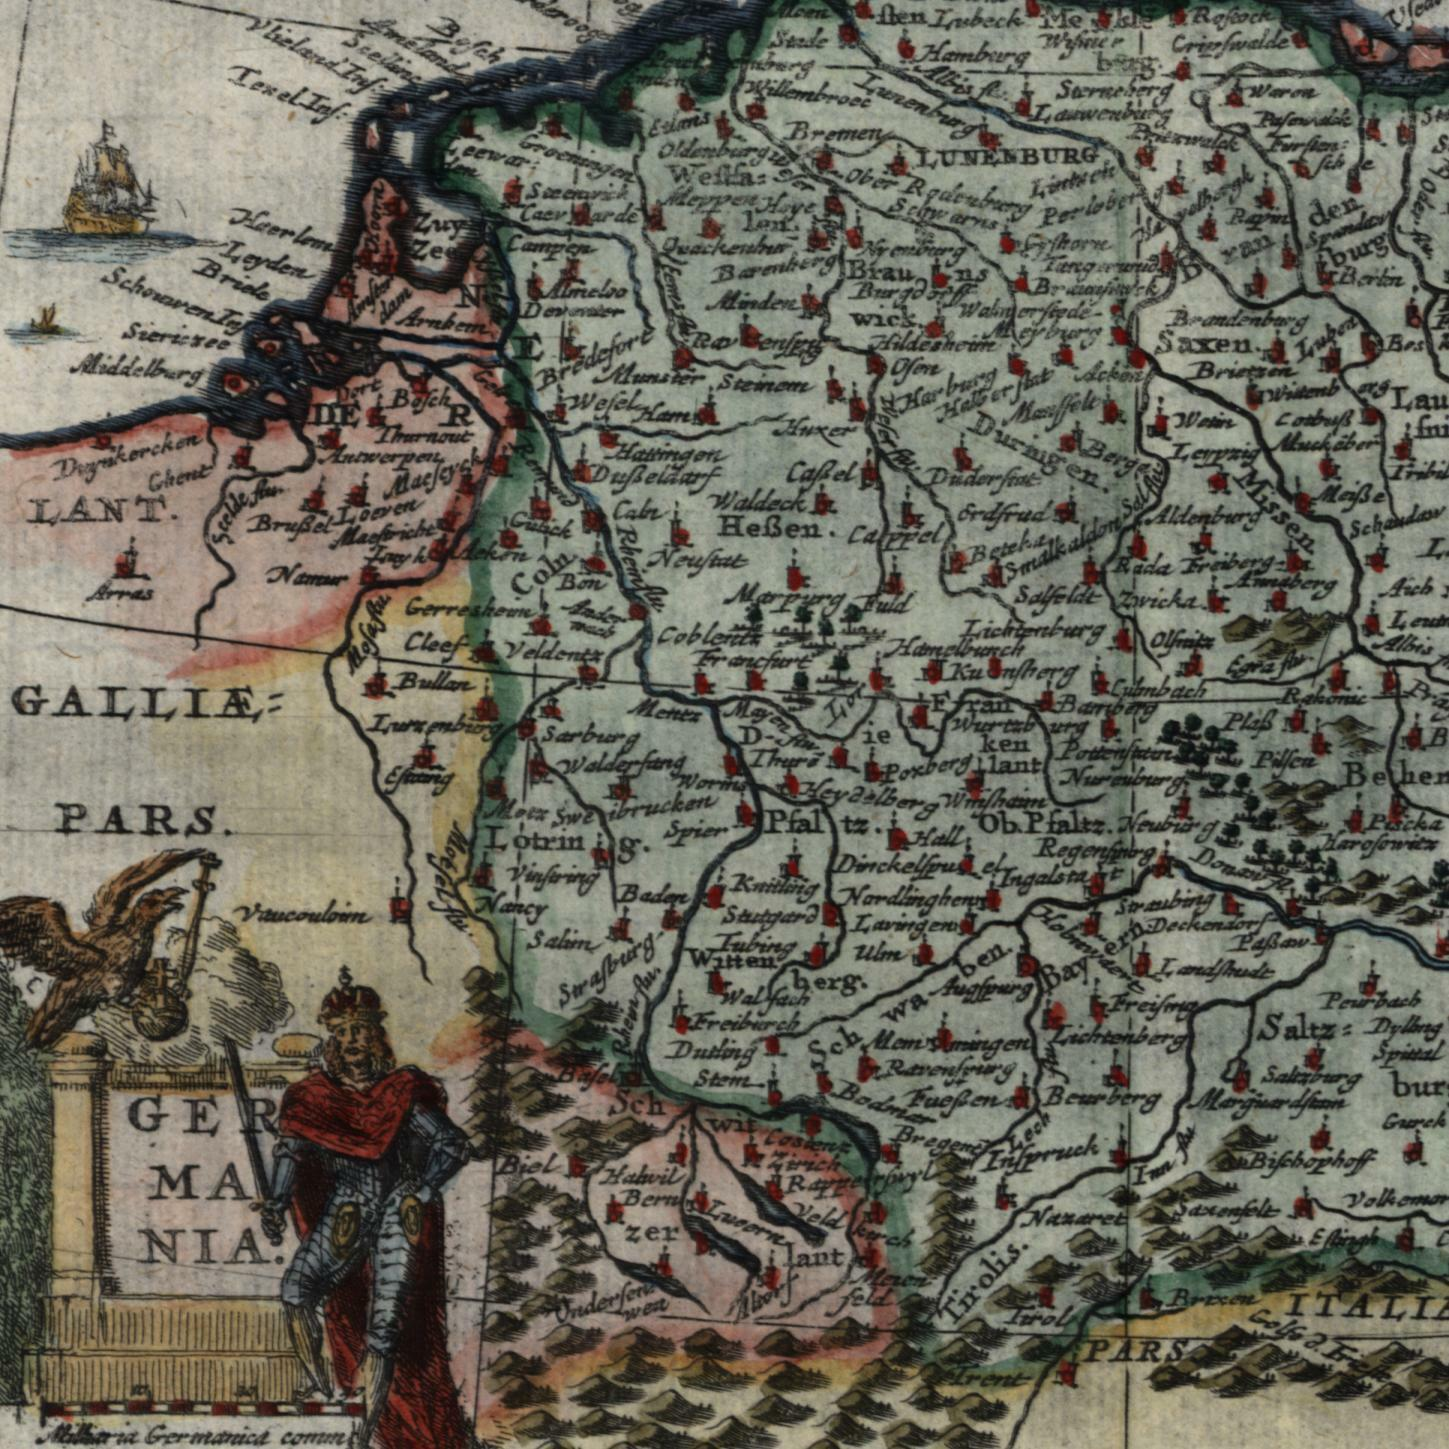 Map Of Germany To Color.Germany Europe Holland To Poland C 1683 Bertius Beautiful Decorative